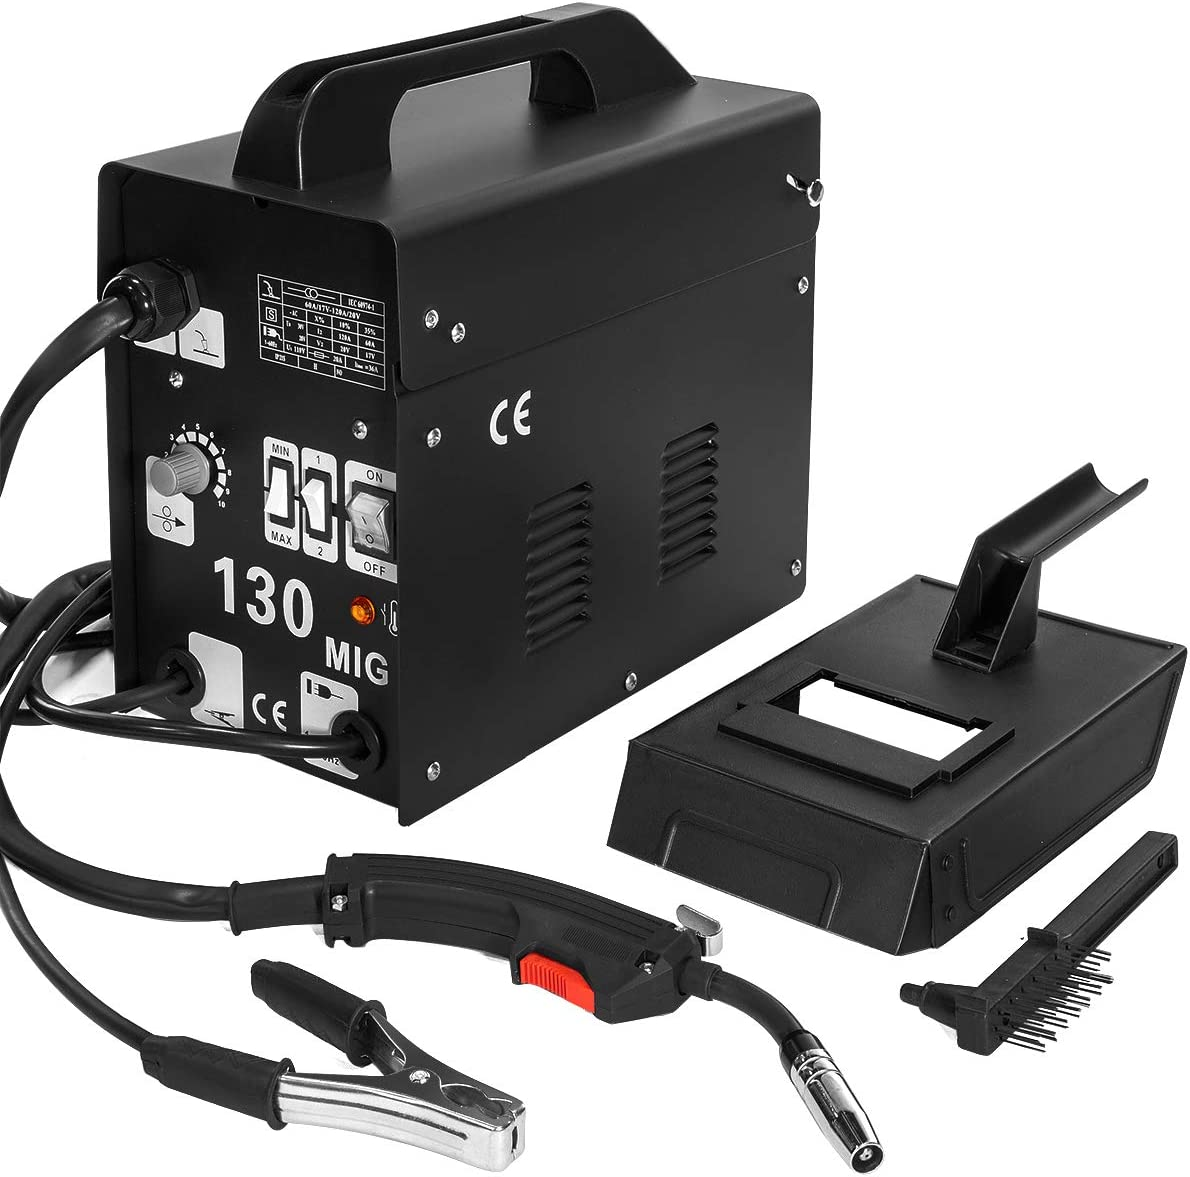 XtremepowerUS MIG 130 Welder Flux Core Wire Automatic Feed Welding Machine AC Core Welding Wire w//Face Mask Kit 110v